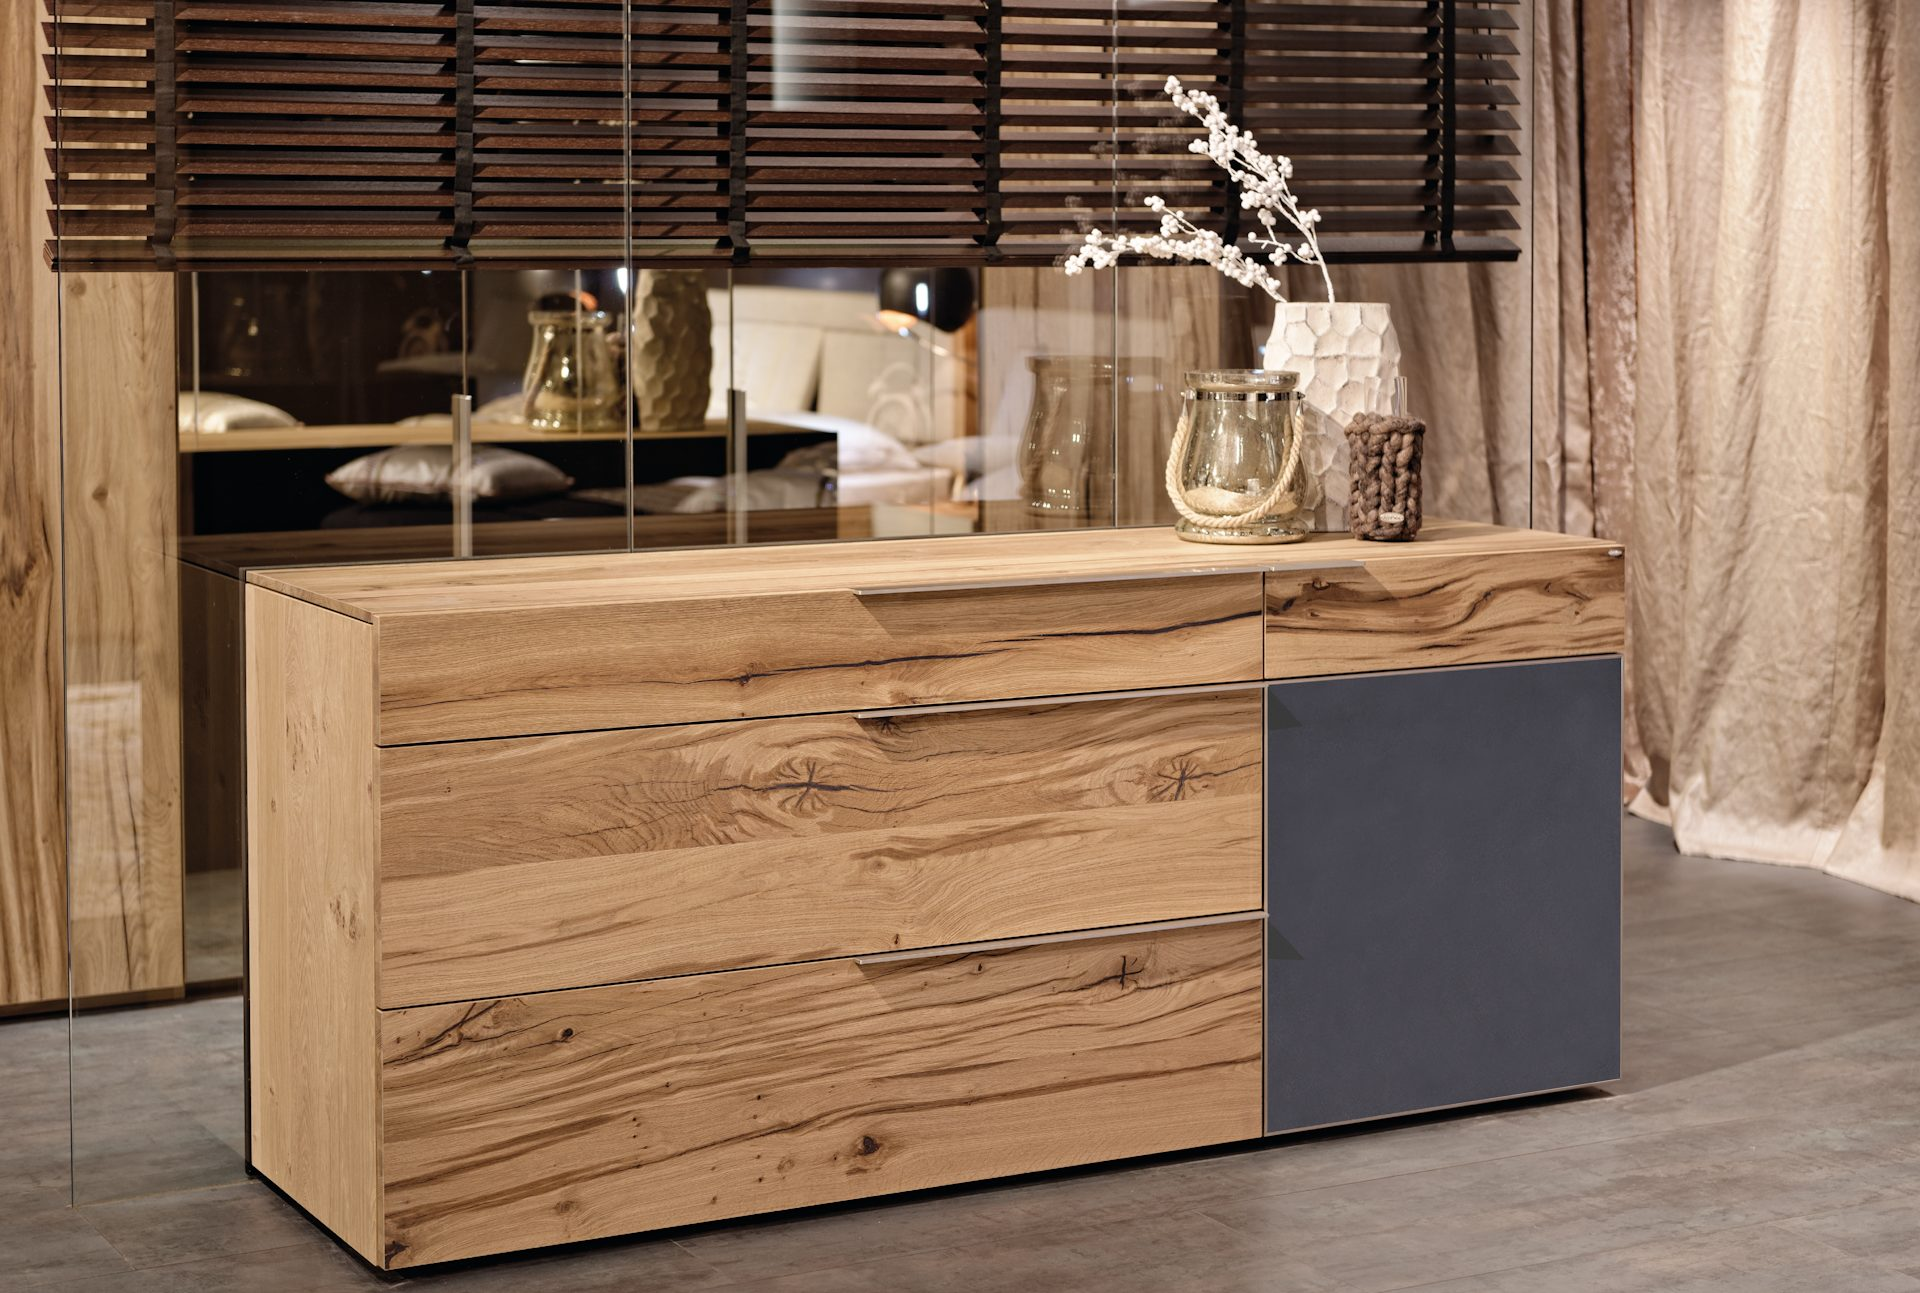 Sideboard Holz Massiv Awesome Sideboard Holz Hell Trop Gmbh